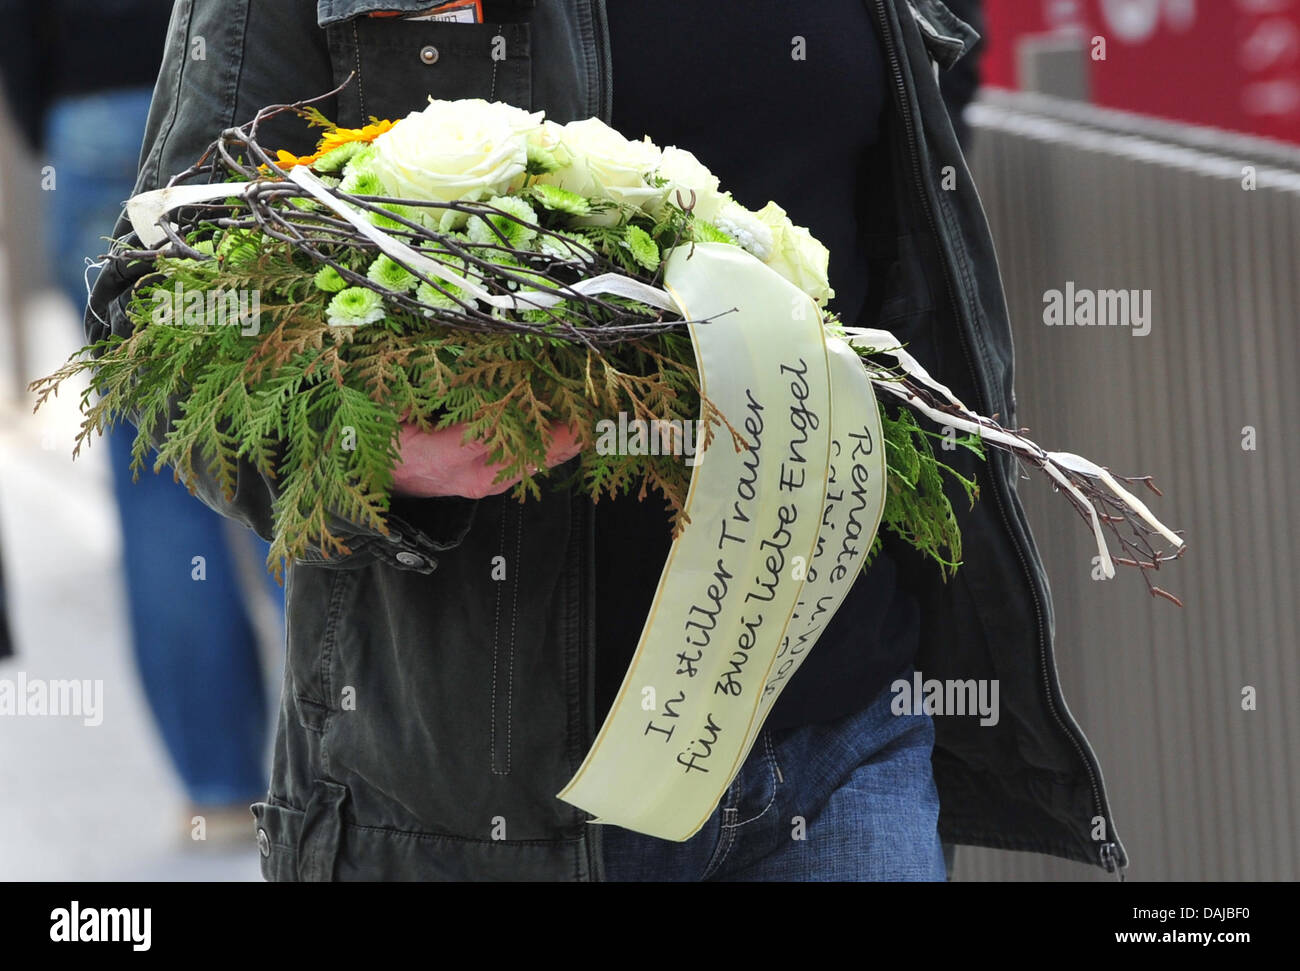 A mourner brings a wreath to the funeral service for the brutally murdered sisters Chiara (8) and Sharon (11), who - Stock Image